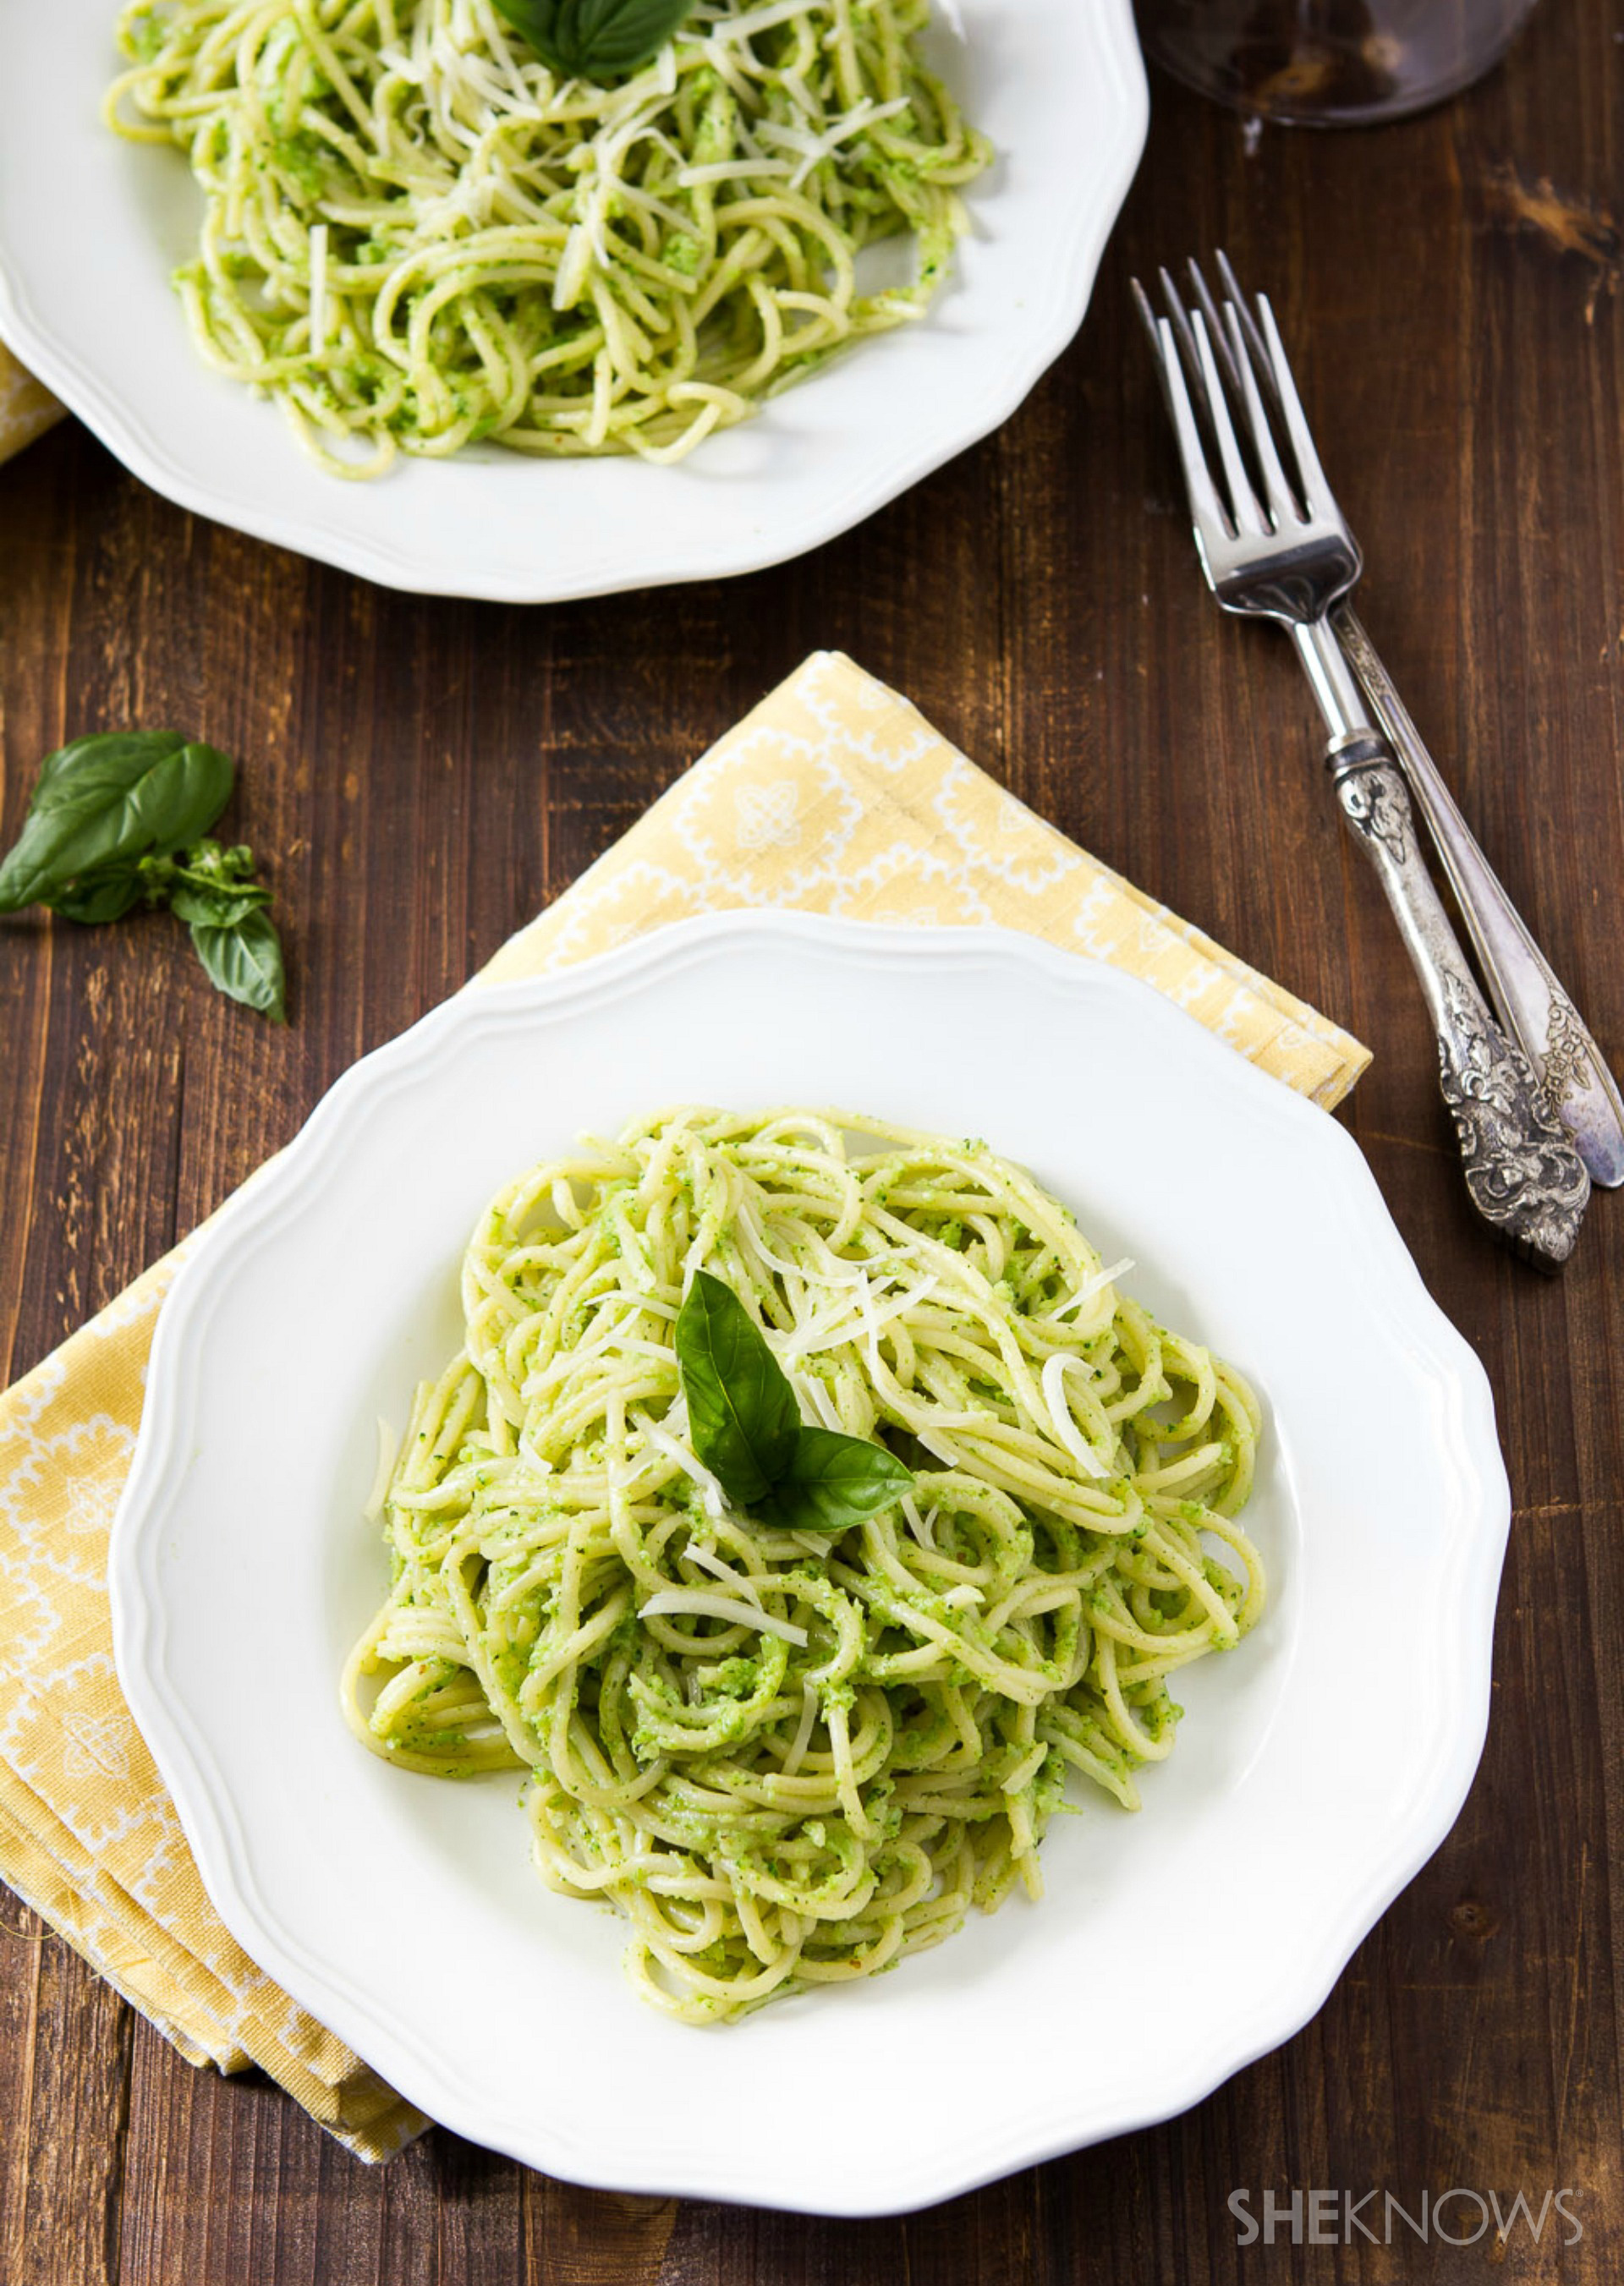 Broccoli and basil pesto spaghetti